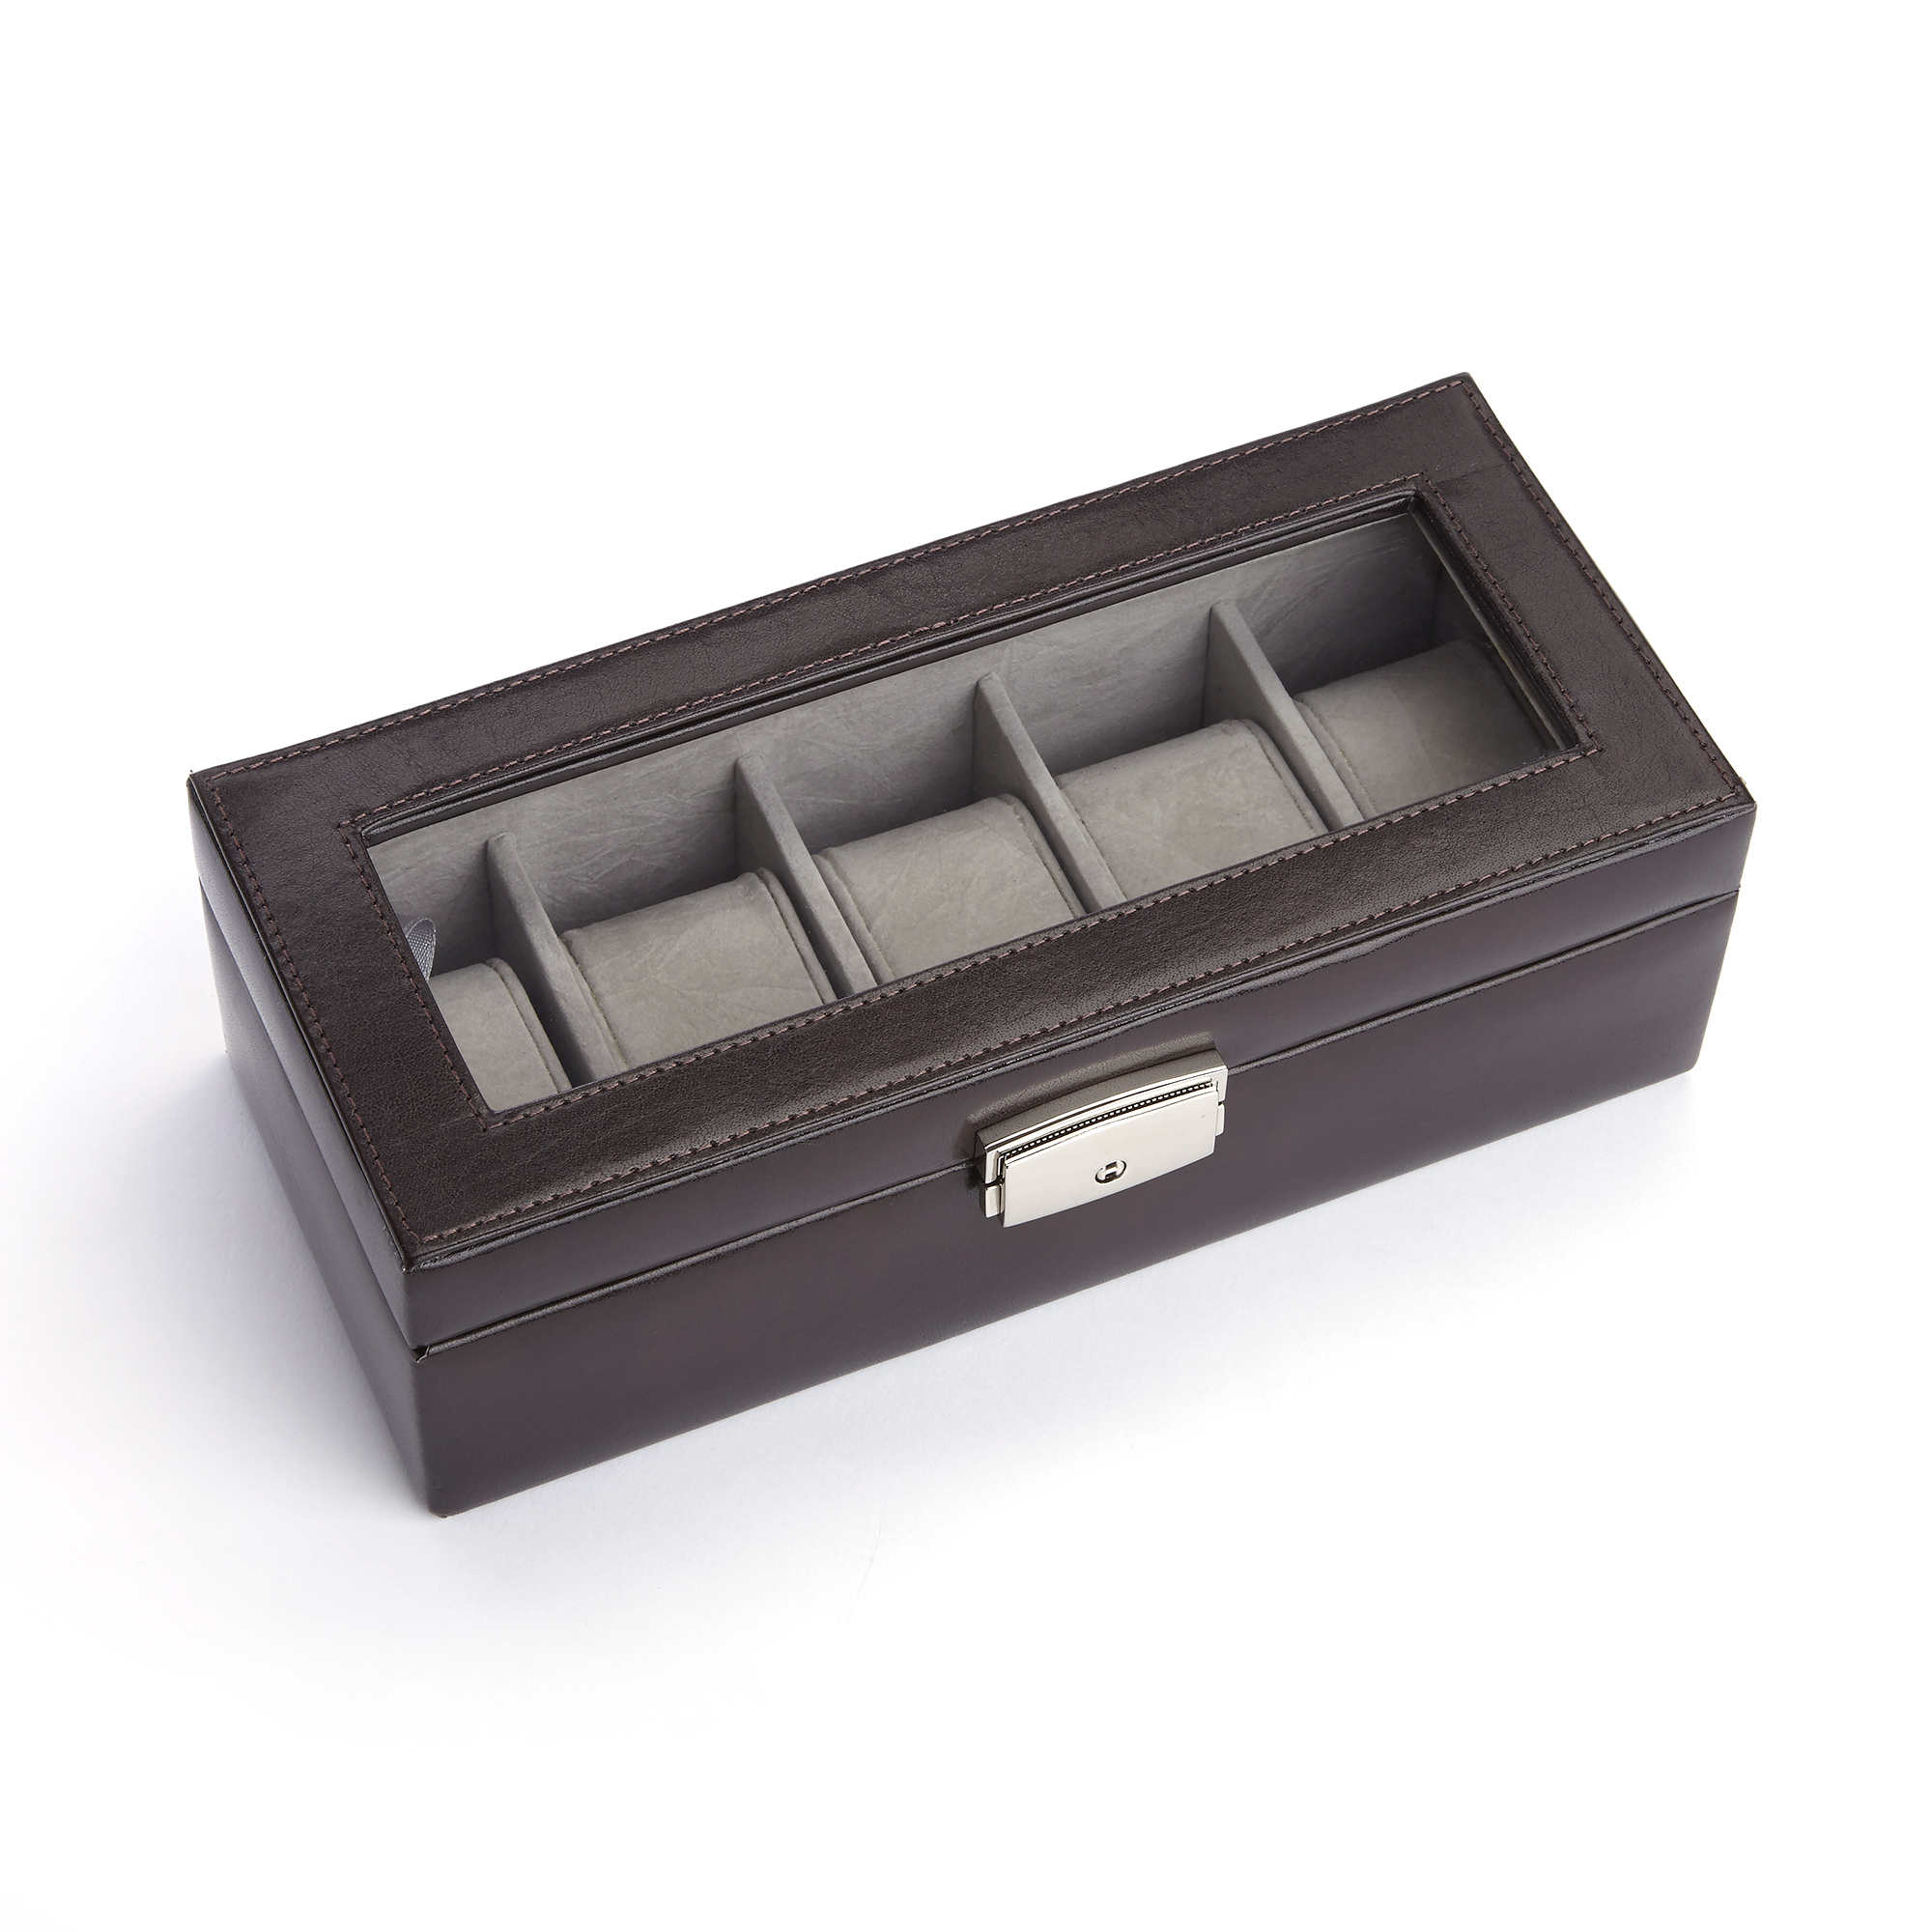 Cufflink Watch Travel Case in Italian Aristo Leather